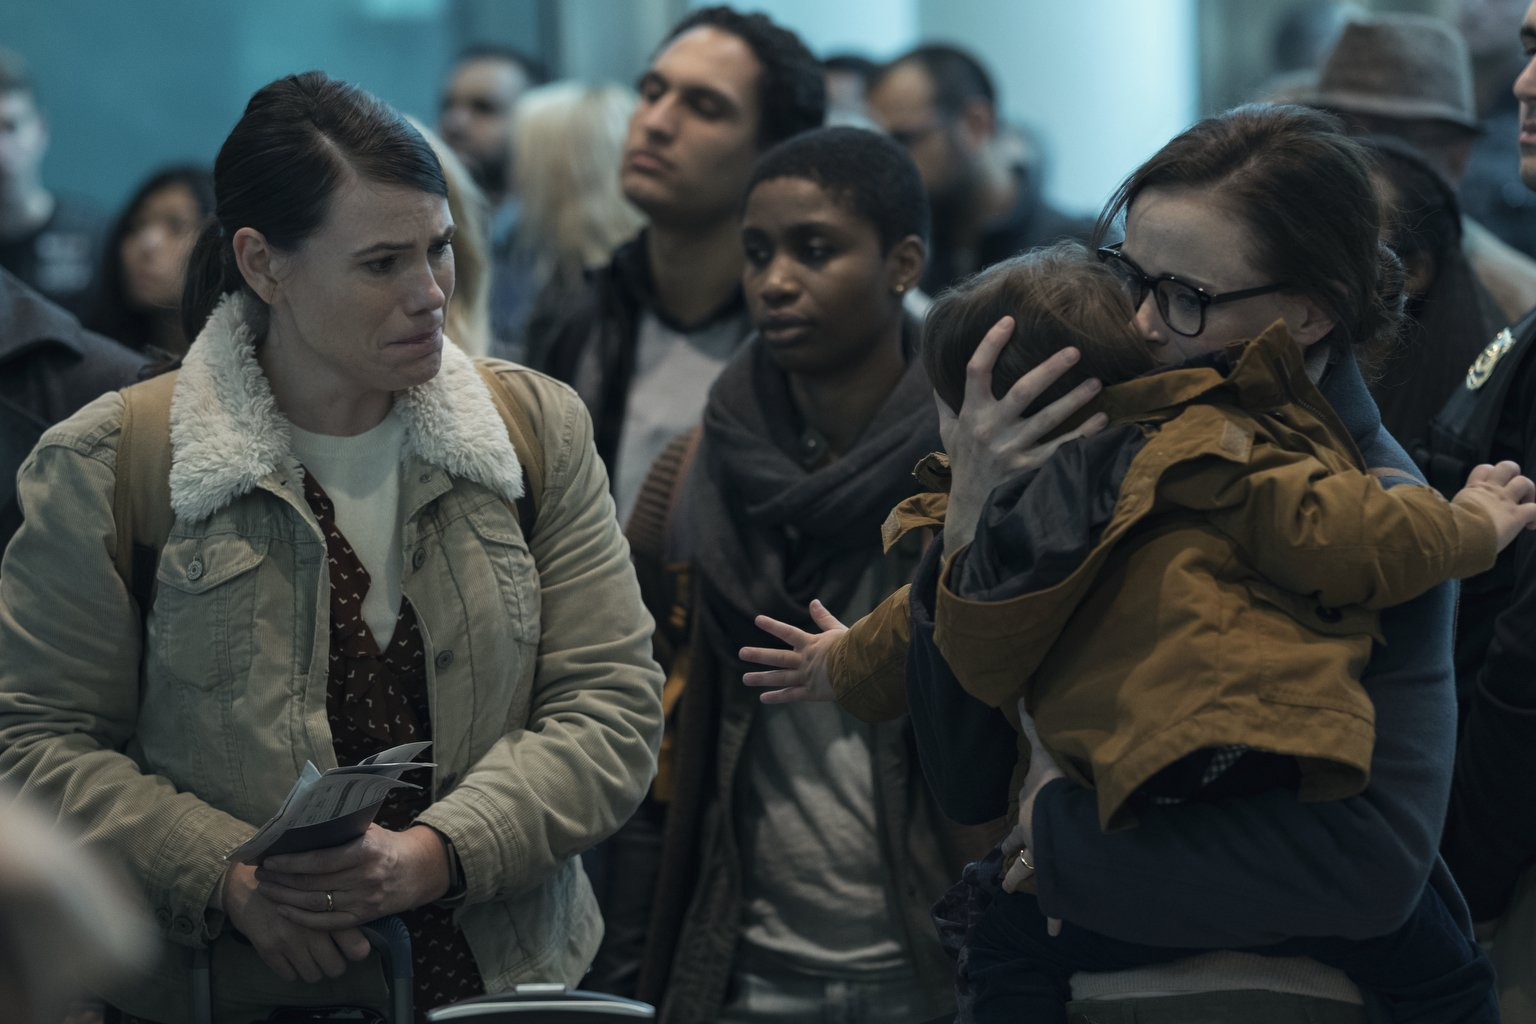 On Eve of Explosive Finale, 'Handmaid's Tale' Takes Top Spot on Digital Originals Chart